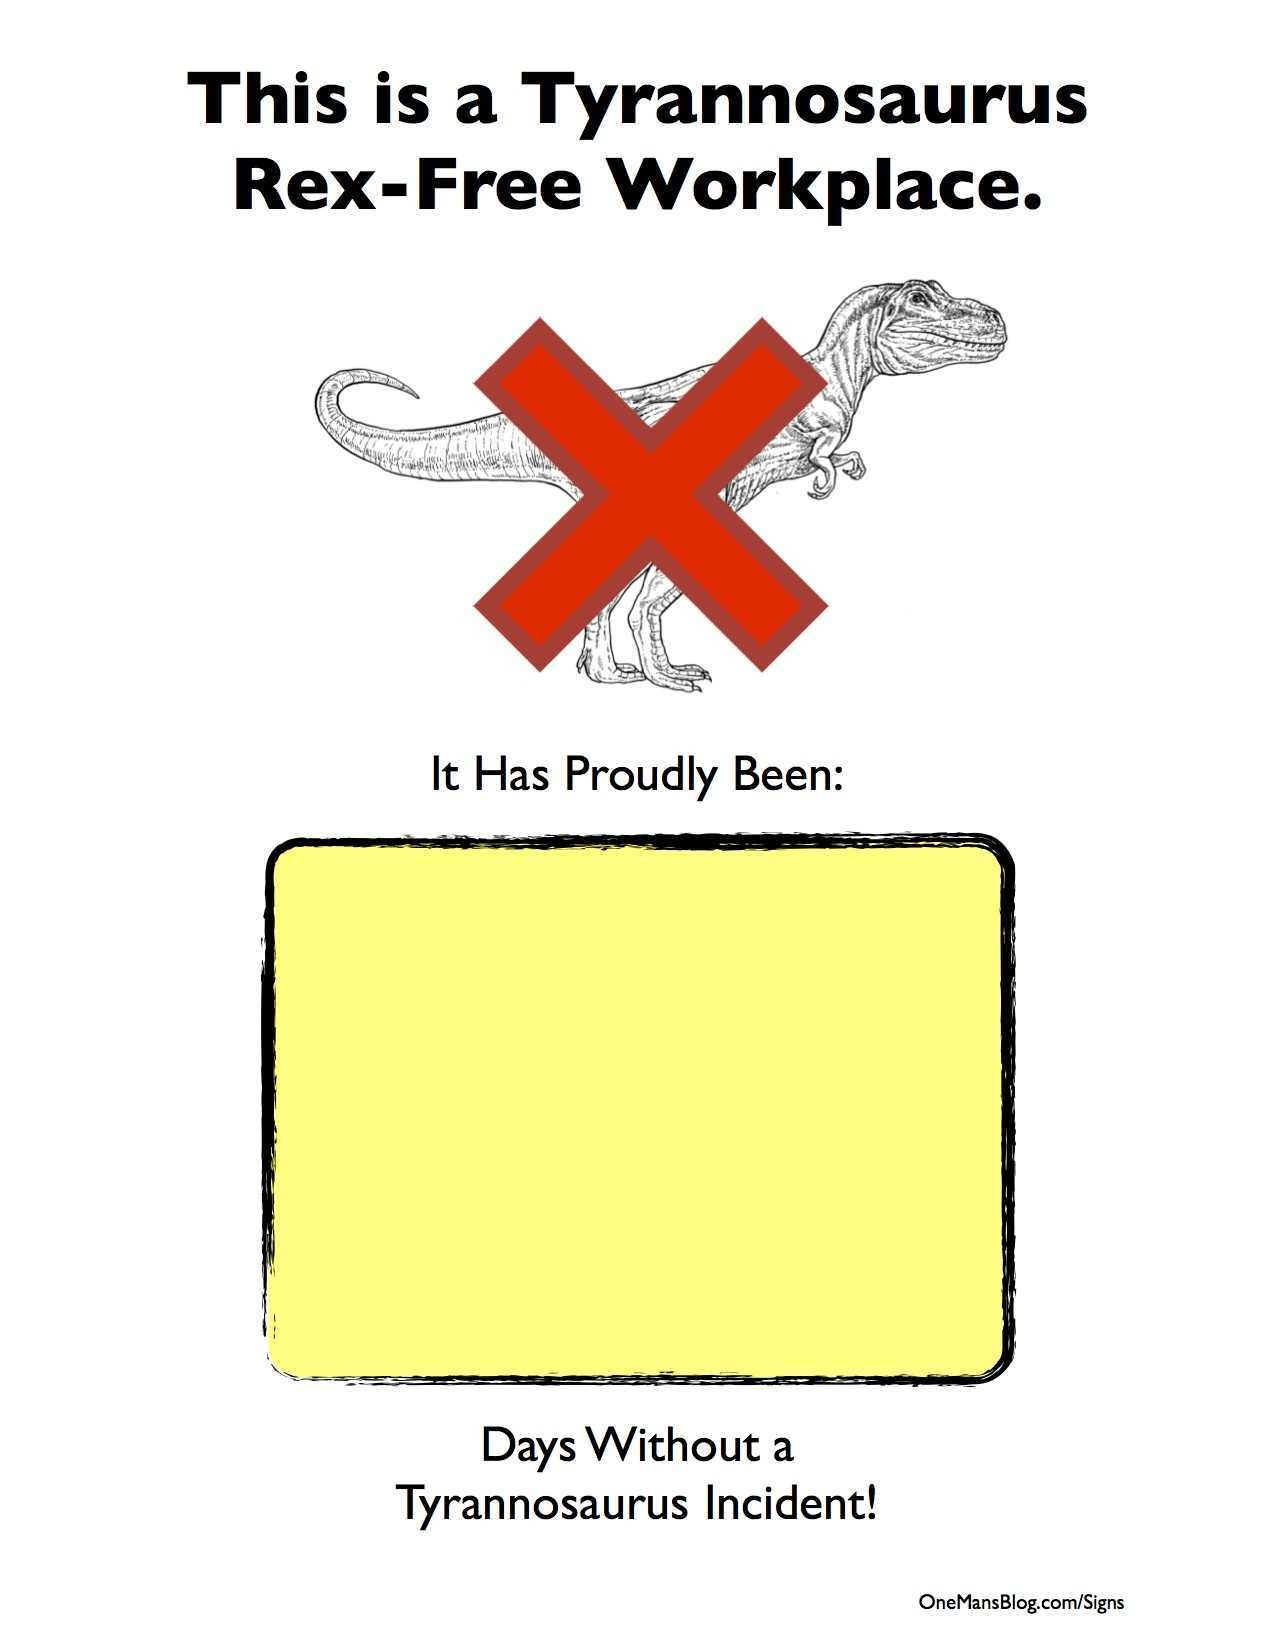 50+ Free Funny Signs (To Print Out And Post!) - Free Printable Funny Office Signs